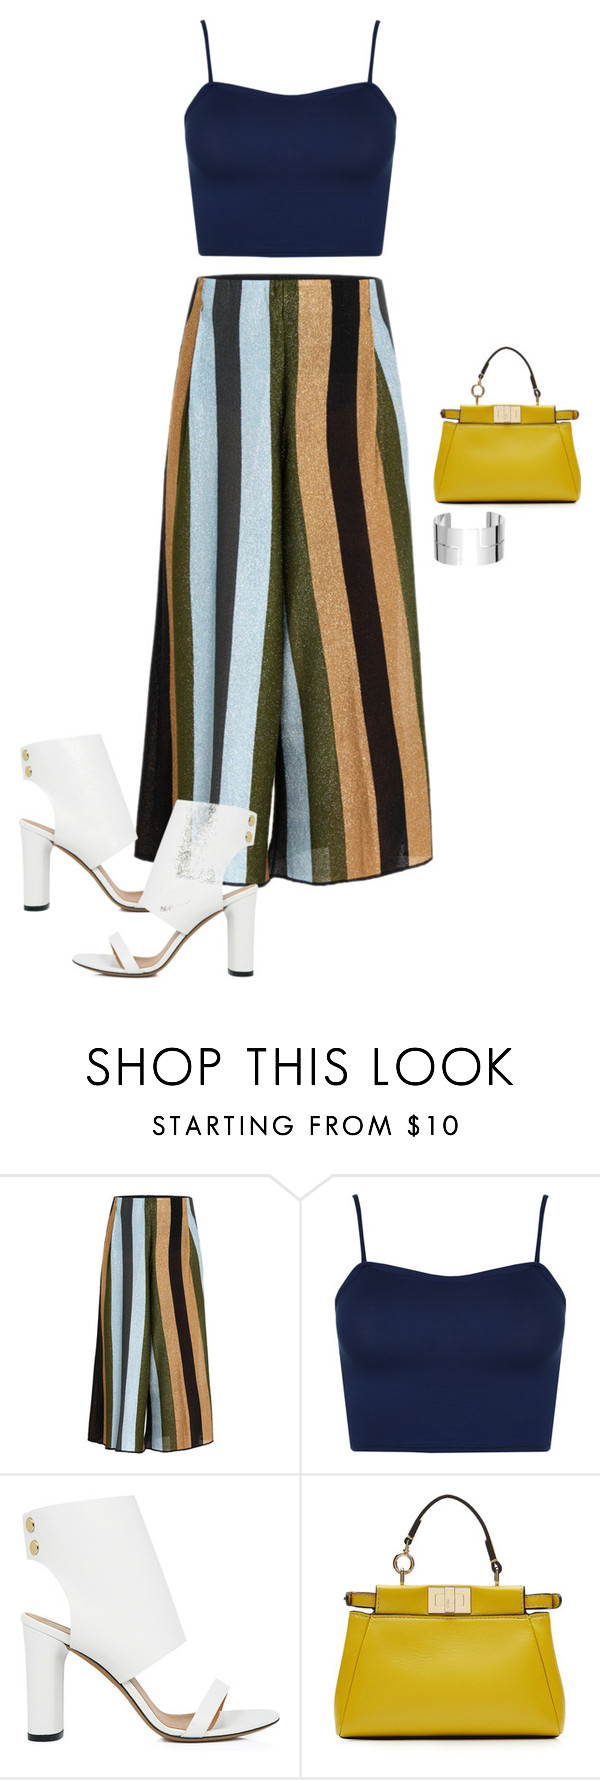 """""""Untitled #1792"""" by quaybrooks ❤ liked on Polyvore featuring Circus Hotel, WearAll, IRO, Fendi and Dinh Van"""